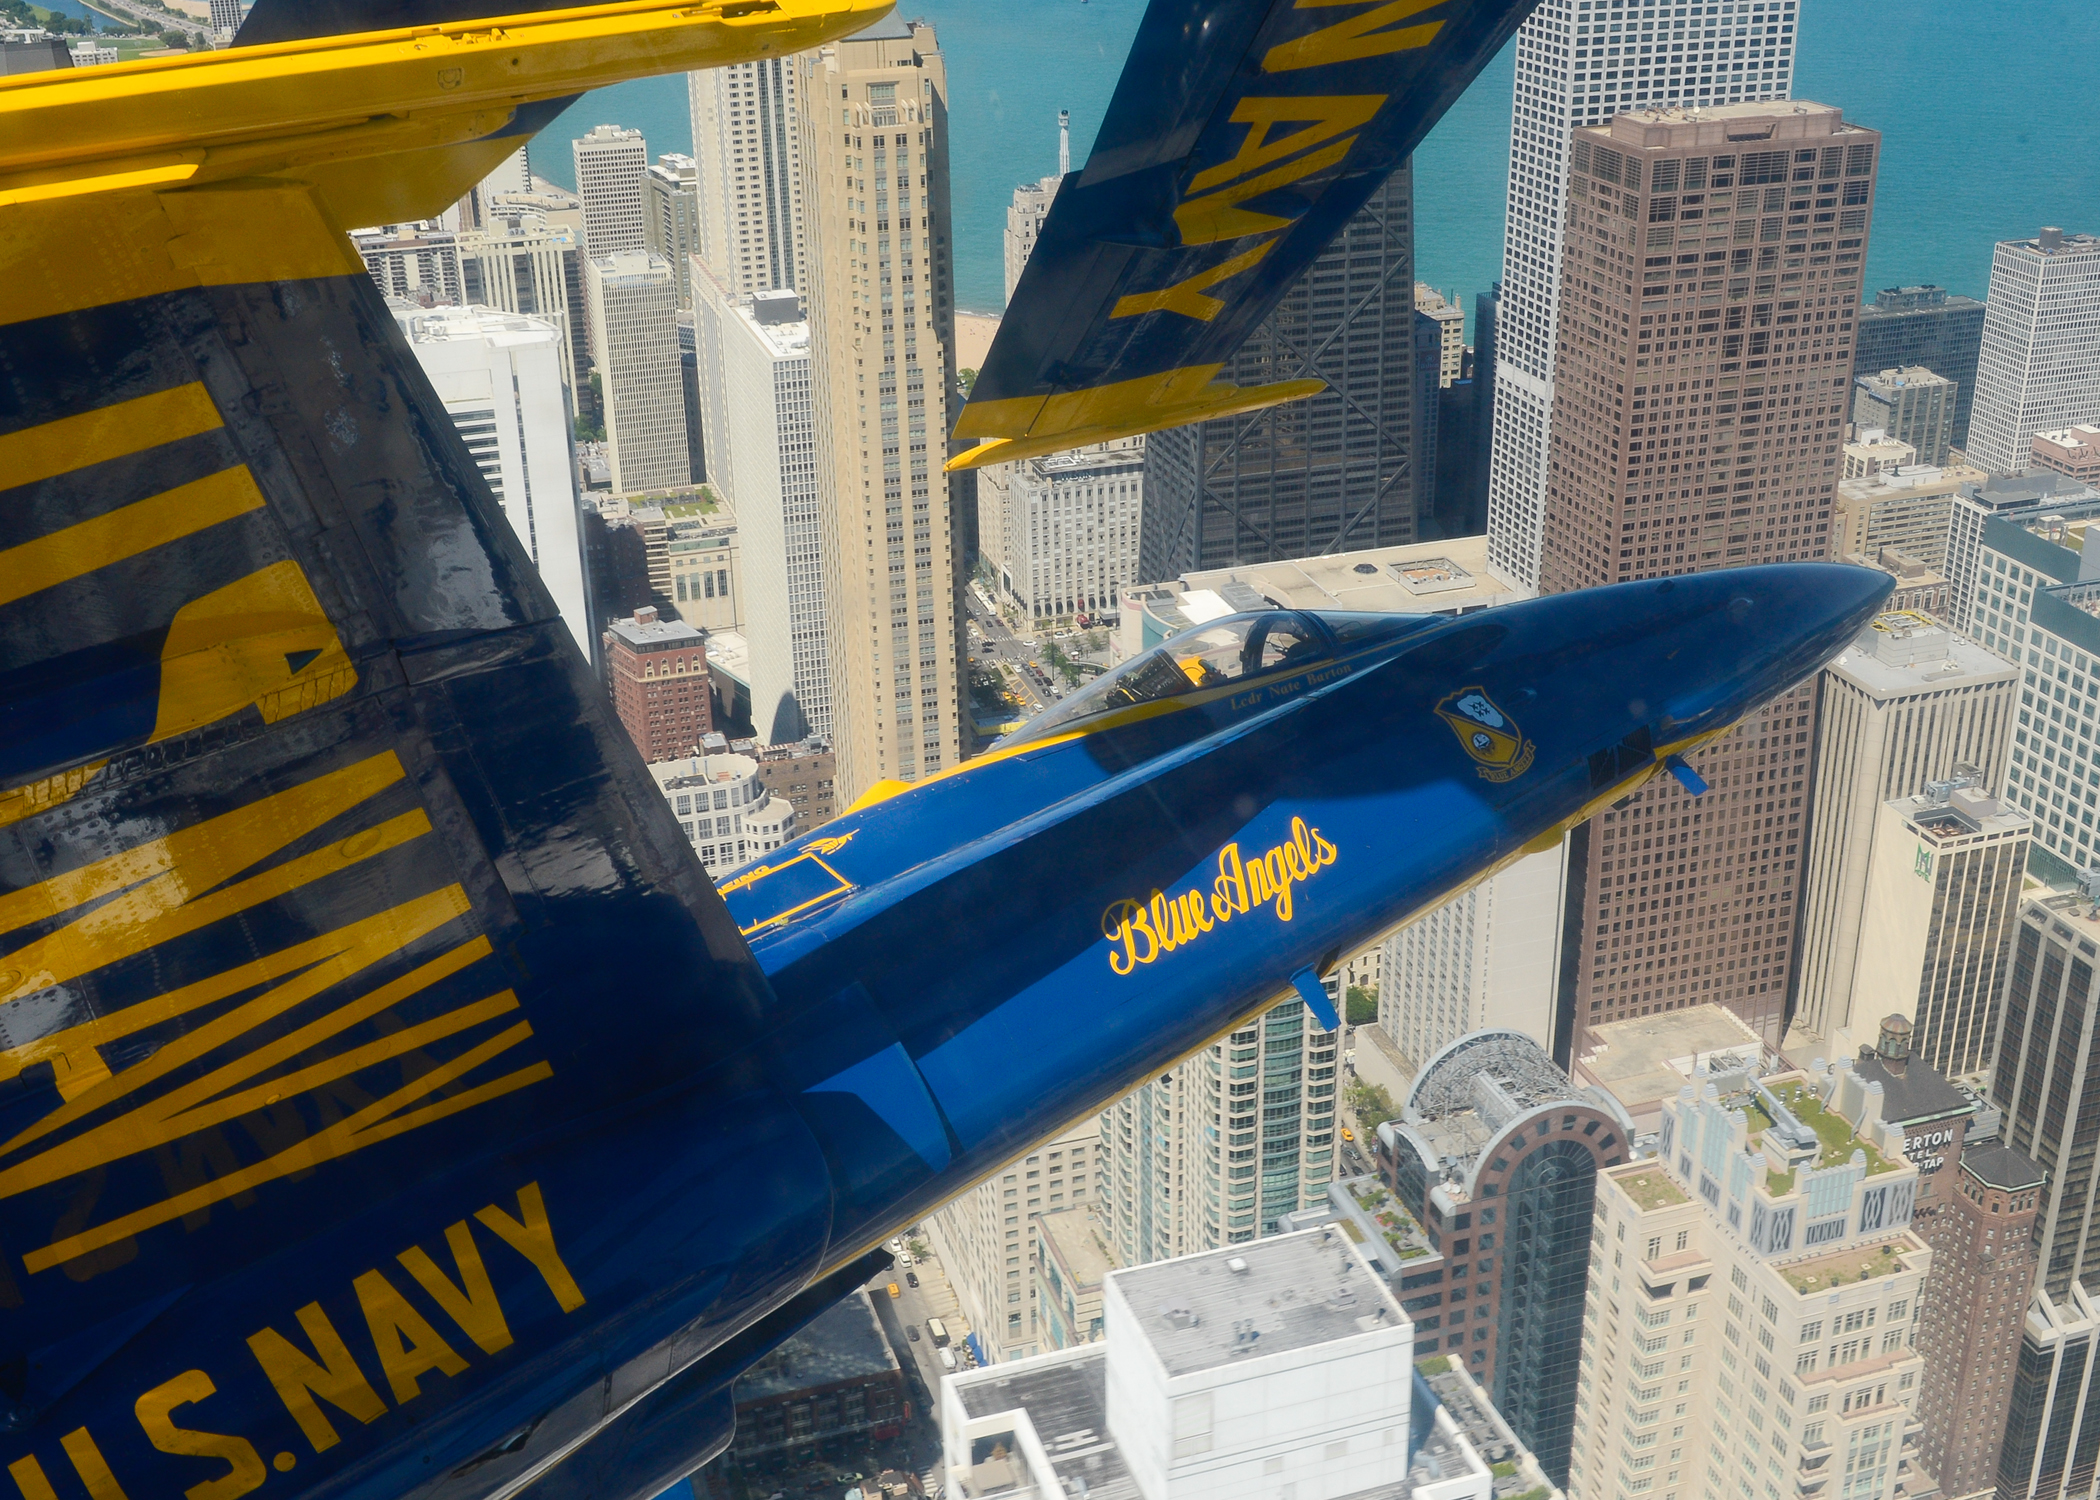 CHICAGO (Aug 14, 2014) Left wing pilot Lt. Cmdr. Nate Barton, assigned to the U.S. Navy flight demonstration squadron, the Blue Angels, flies above Chicago during a practice demonstration in preparation for the Chicago Air and Water Show, scheduled for Aug 16 and 17. The Blue Angels are scheduled to perform 68 demonstrations at 34 locations across the U.S. in 2014. (U.S. Navy photo by Mass Communication Specialist 1st Class Michael Lindsey/Released)